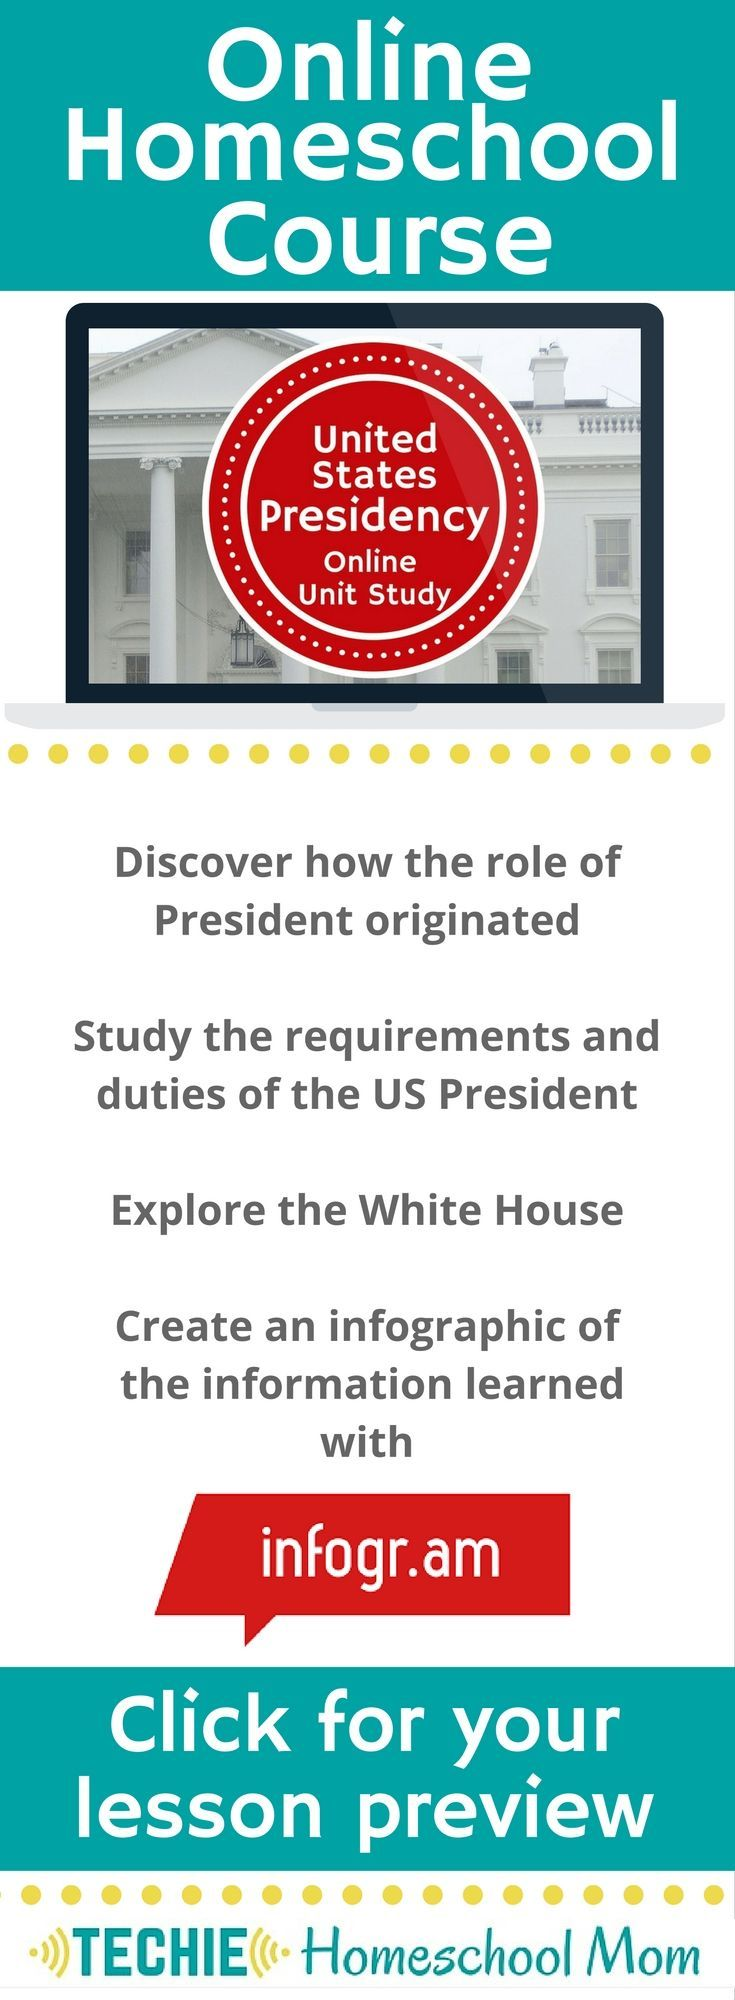 Try the United States Presidency Online Unit Study. This online homeschool course integrates multiple subjects for multiple ages of students. Access websites and videos and complete digital projects. With Online Unit Studies' easy-to-use E-course format, no additional books or downloads are needed. Just gather supplies for hands-on projects and register for online tools. Click for your free lesson.